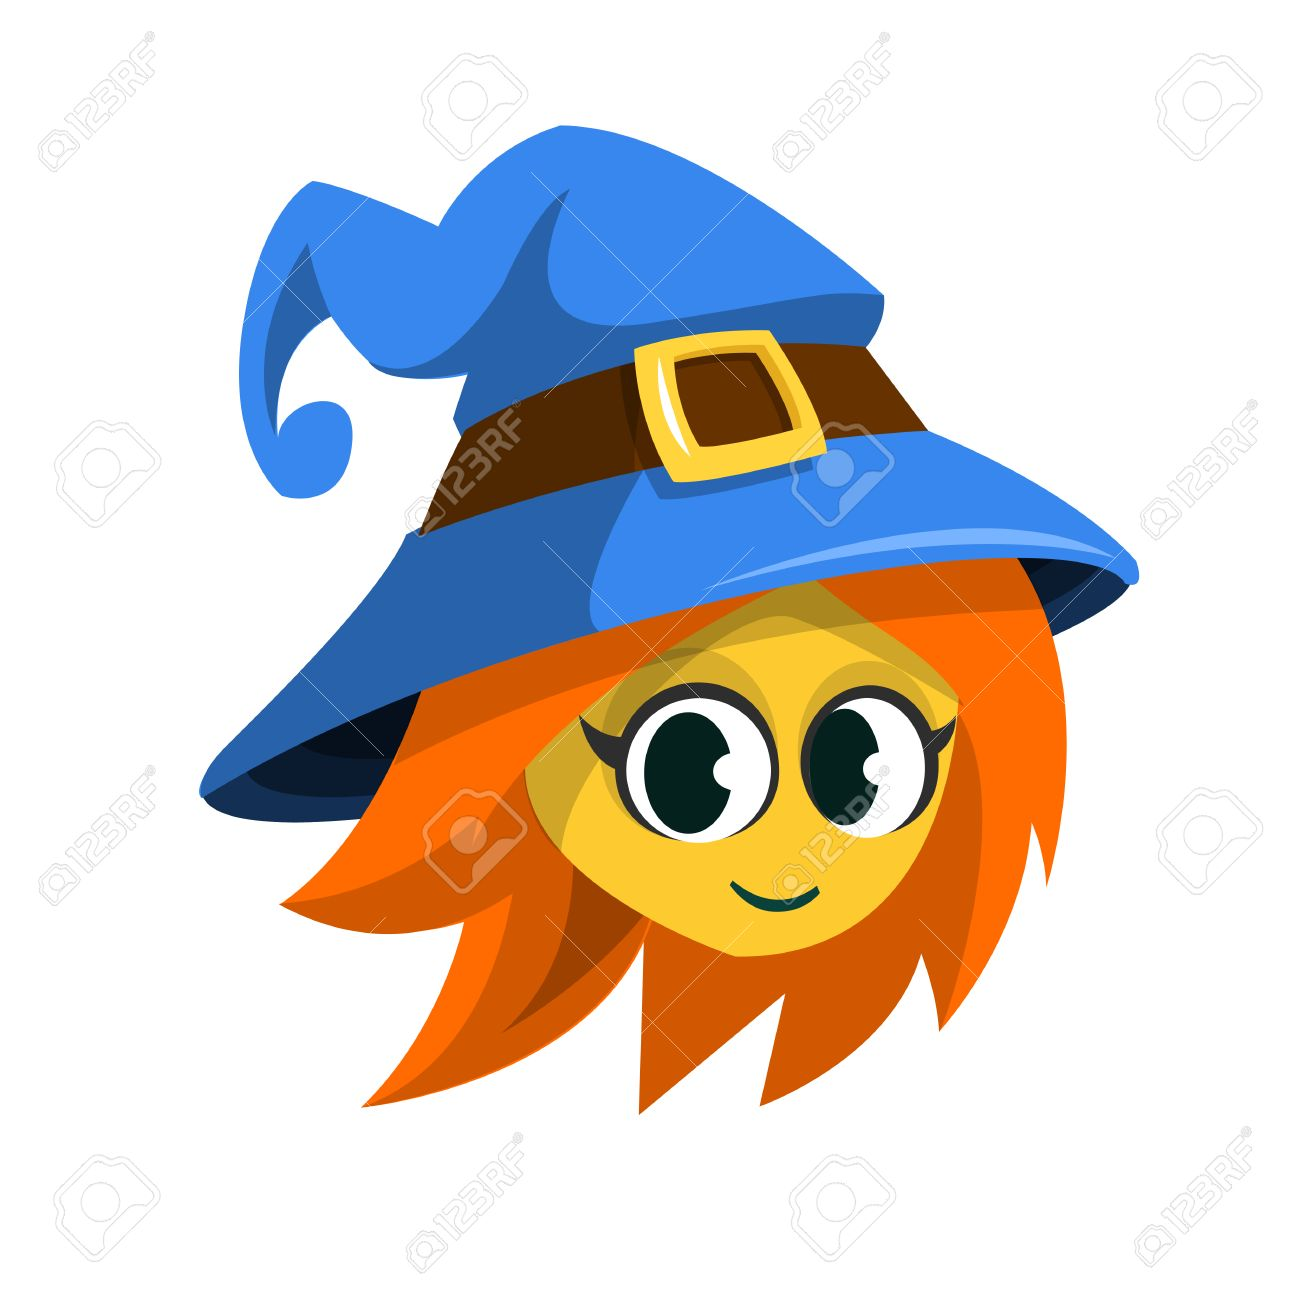 Halloween Cartoon Witch Face.Cartoon Witch Face Vector Clip Art Illustration Of Halloween